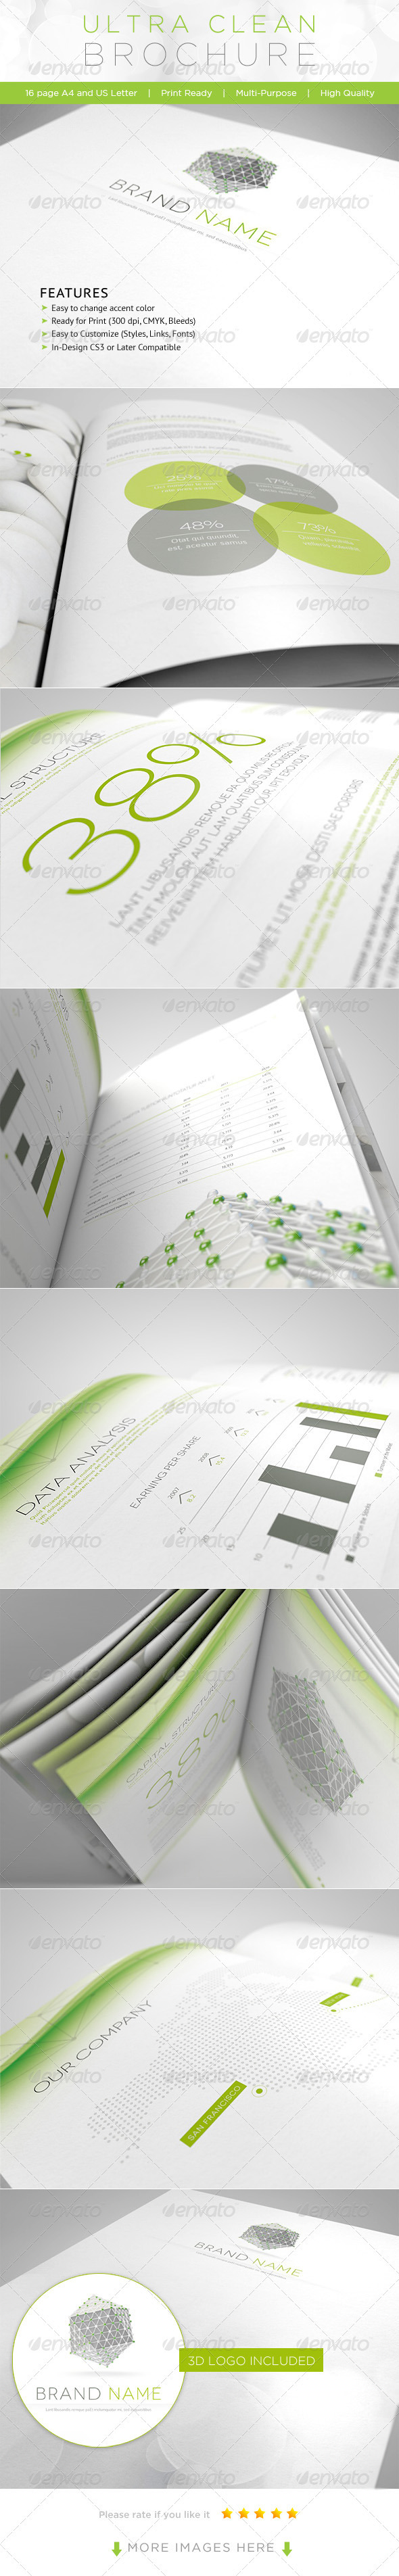 Ultra Clean Brochure - Corporate Brochures